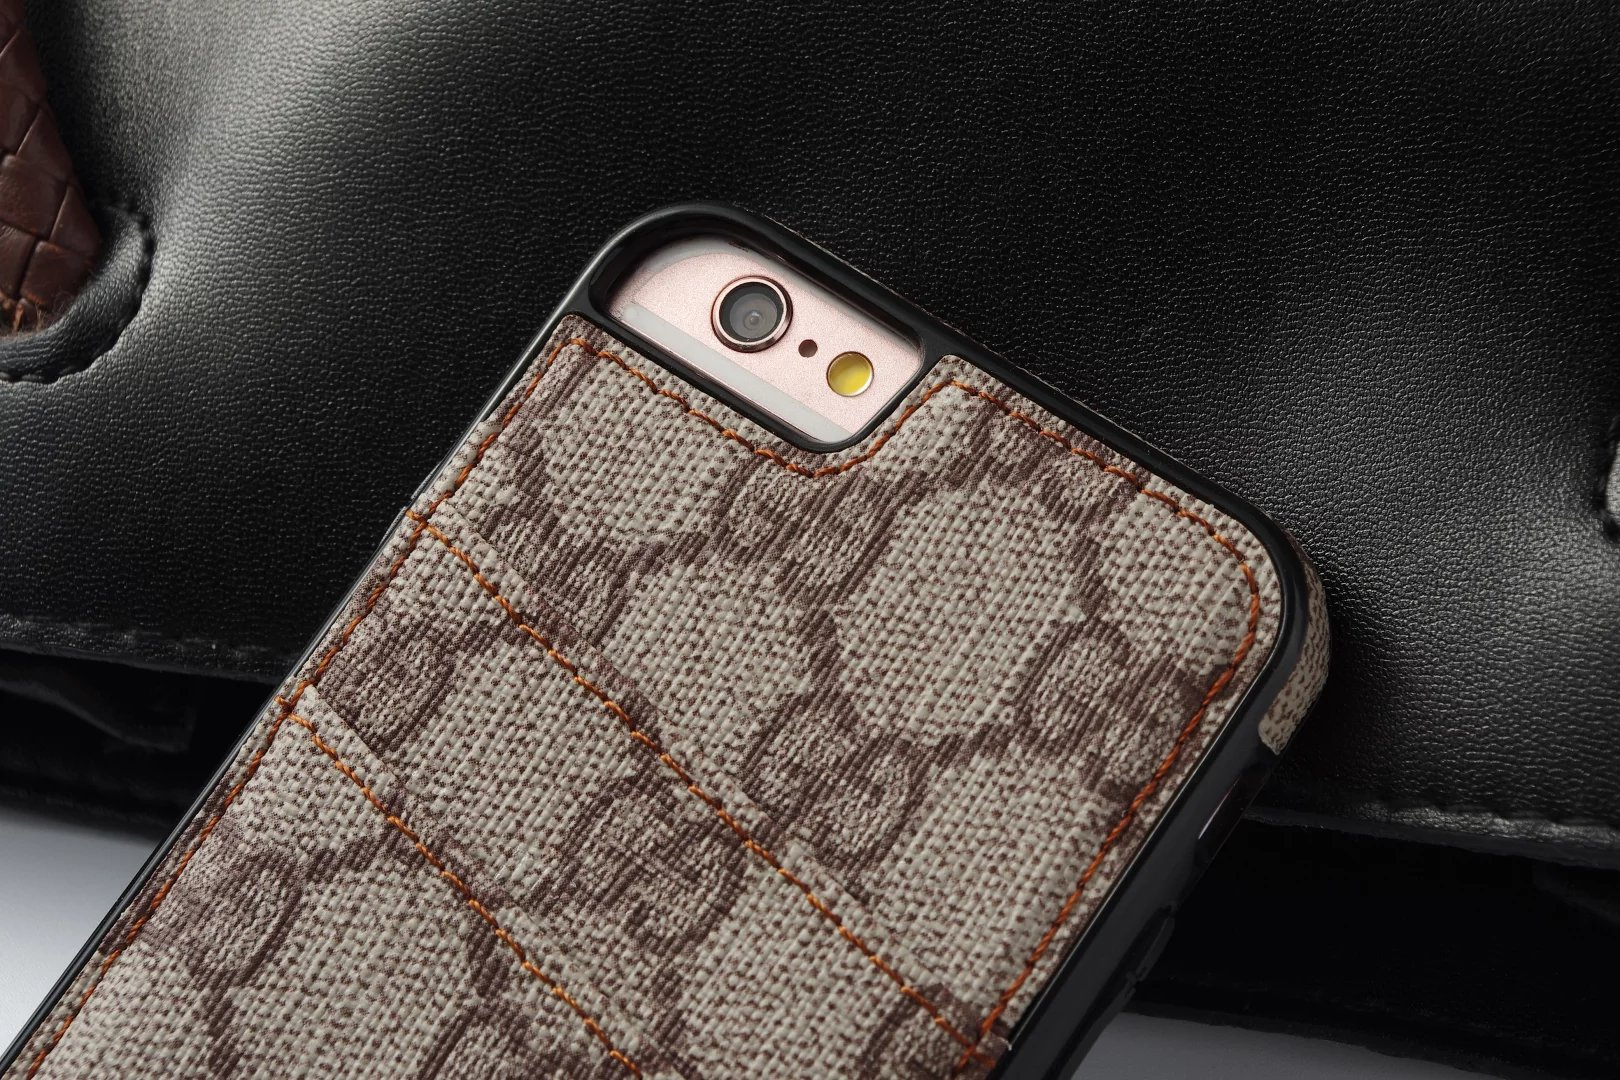 iphone case mit foto iphone case selbst gestalten günstig Louis Vuitton iphone7 Plus hülle iphone 7 Plus ilikon apple iphone gerüchte handyhüllen für htc one mini iphone hülle mit kartenfach rosa iphone 7 Plus hülle samsung handy hüllen